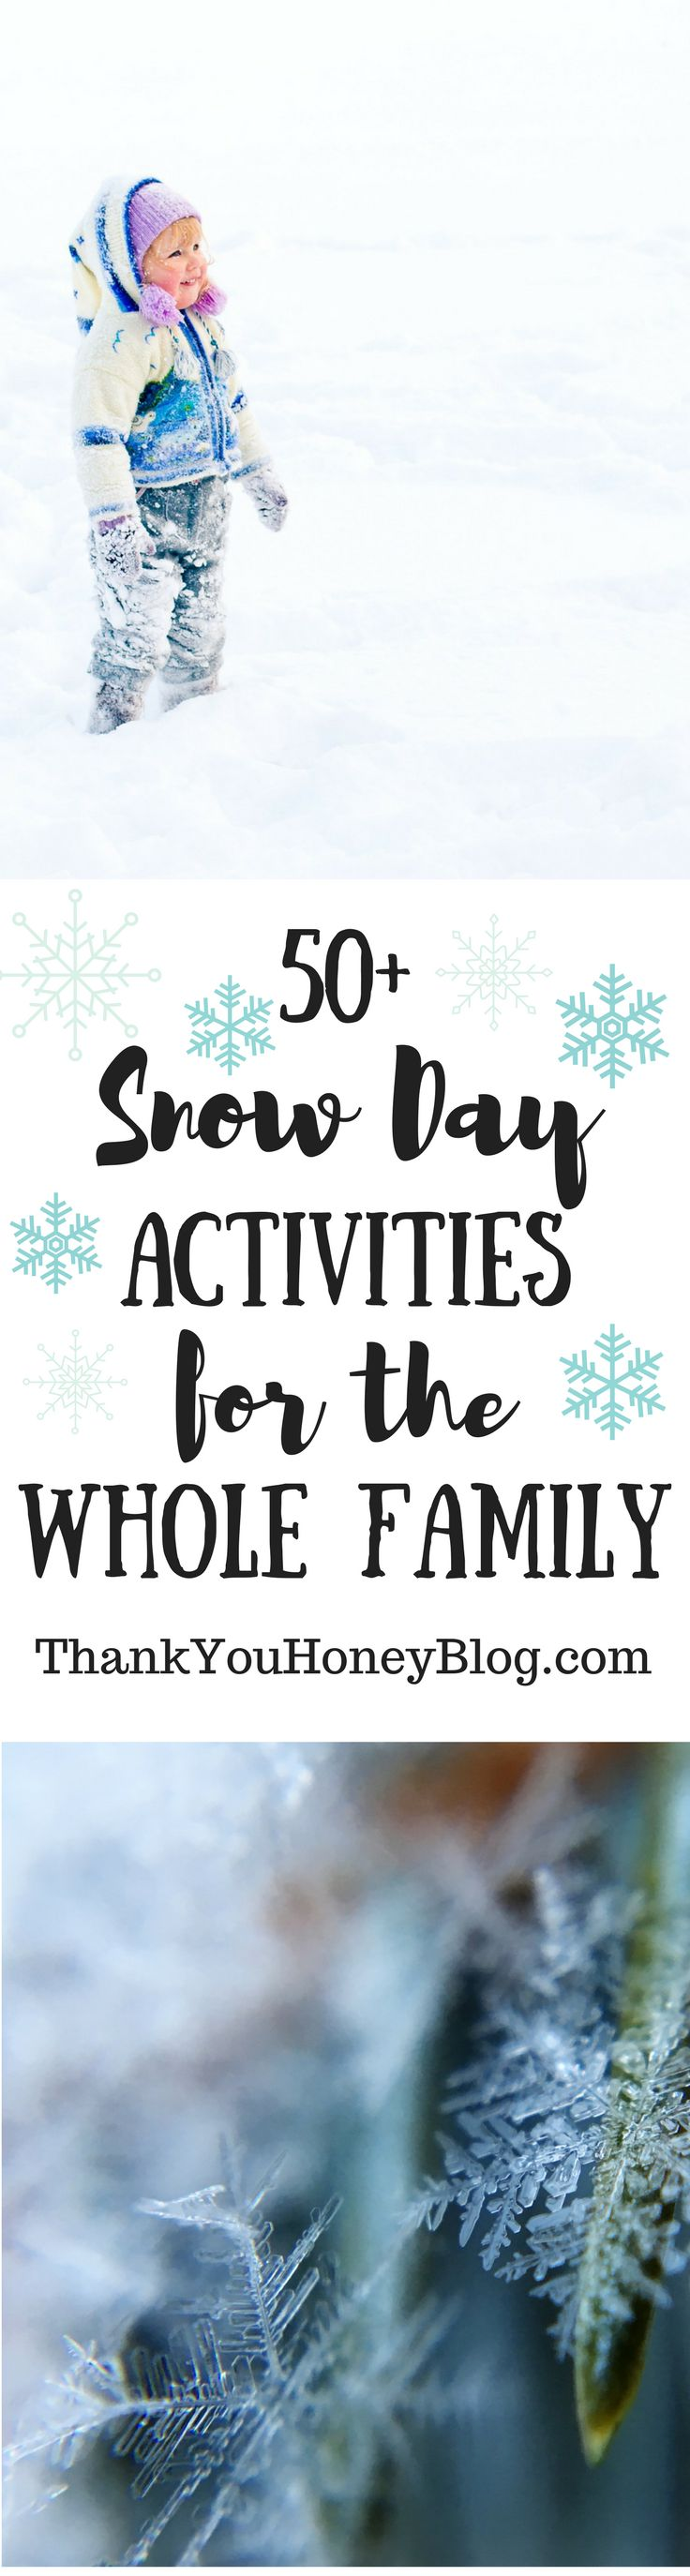 50+ Snow Day Activities for the Whole Family, #SnowDay, Snow Day Activities, Indoor Activities, #Thingstodo, 50 Snow Day Activities For the Whole Family, Family Time, Quality Time, Fun, #Snowedin, Family Fun, Snow, #Crafts, #DIY, #FamilyActivities,